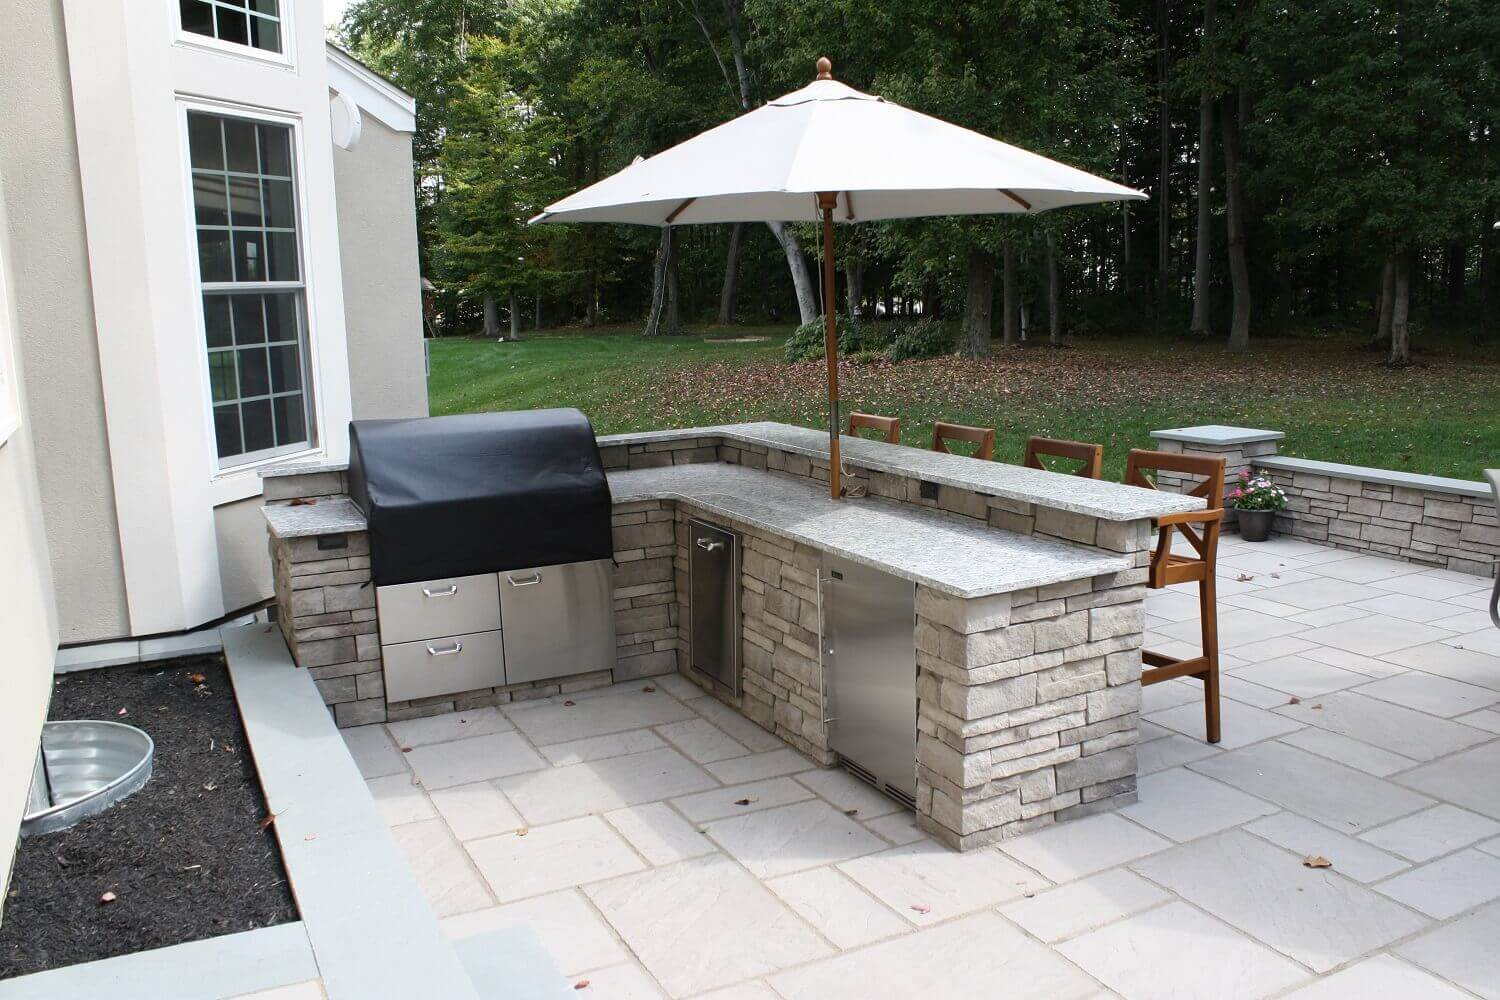 Outdoor Kitchen With Bar Fridge